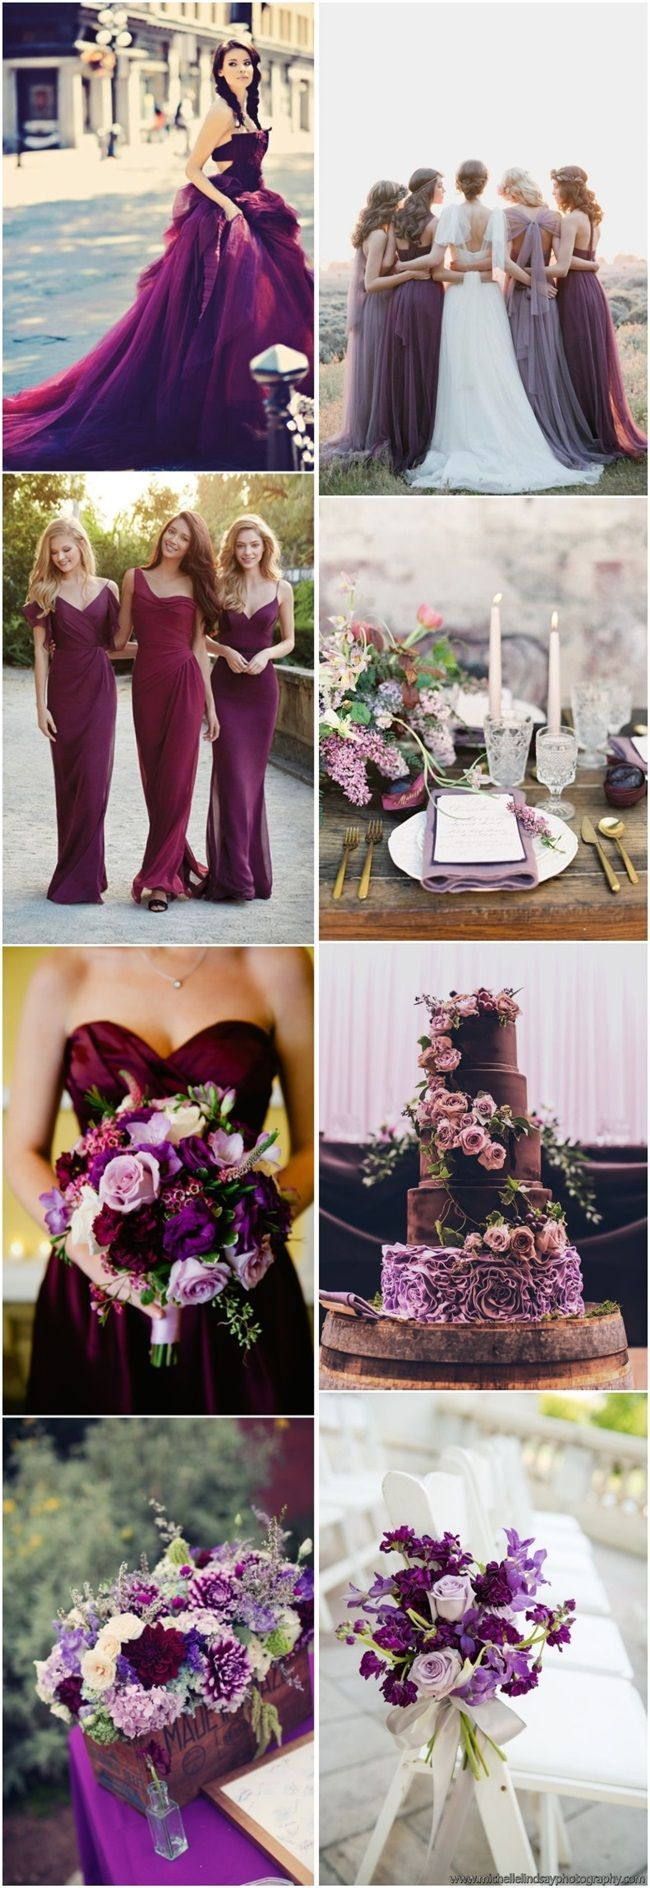 Purple Wedding | Want to detox? Drink CUTEA with 10% off using coupon code 'Pinterest10' on www.getcutea.com